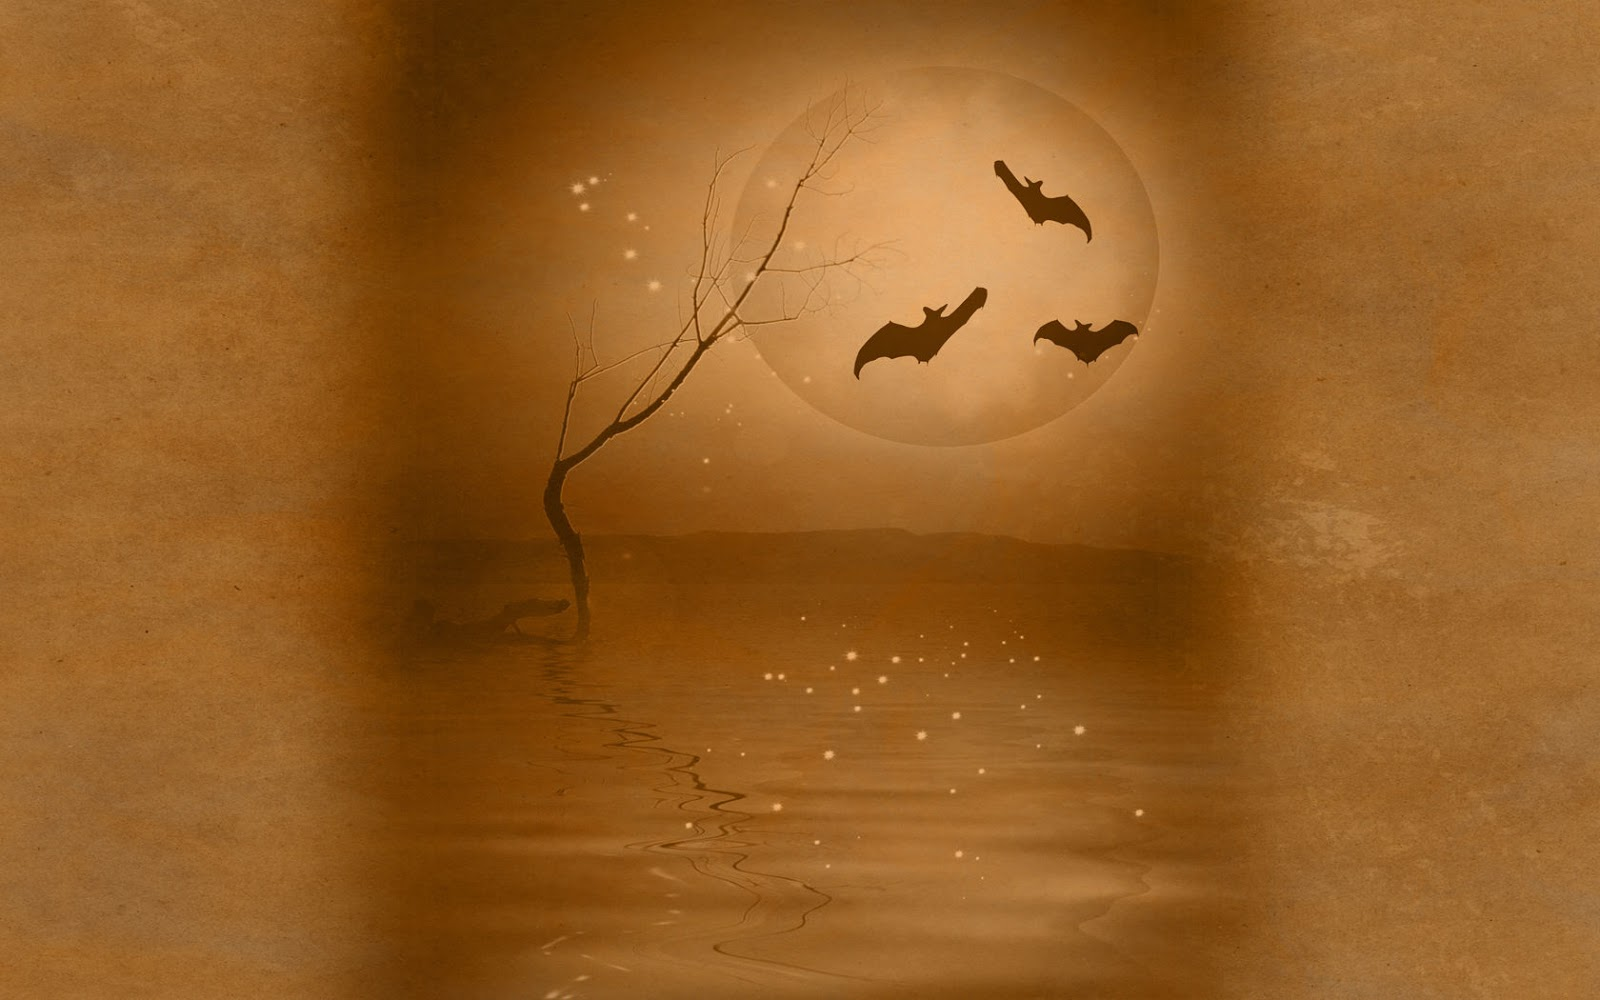 Halloween Tumblr Backgrounds 2014 by ibjennyjenny